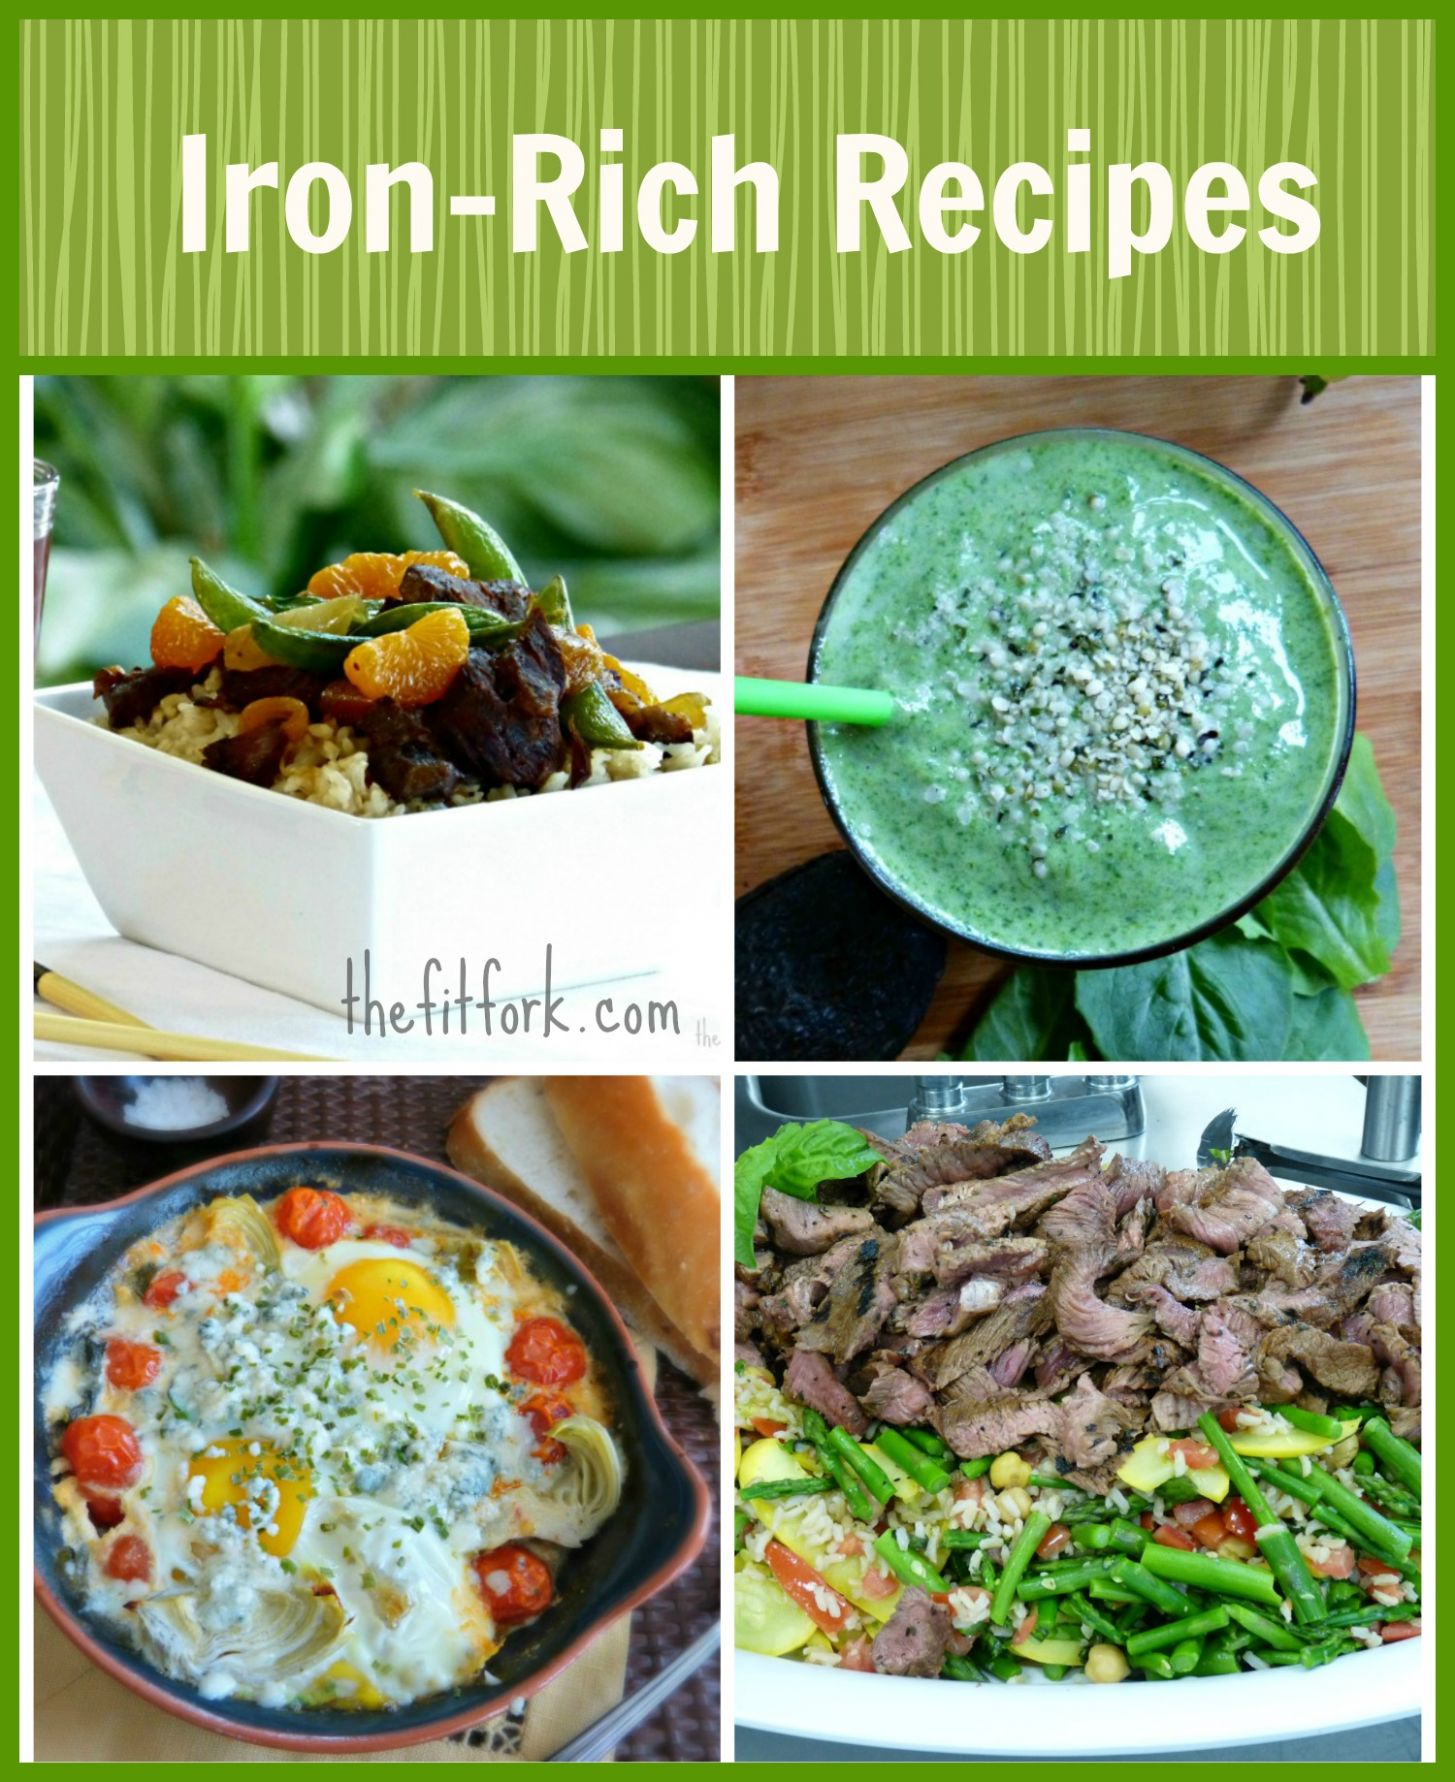 Anemia in Runners & Healthy Iron Rich Recipes | thefitfork